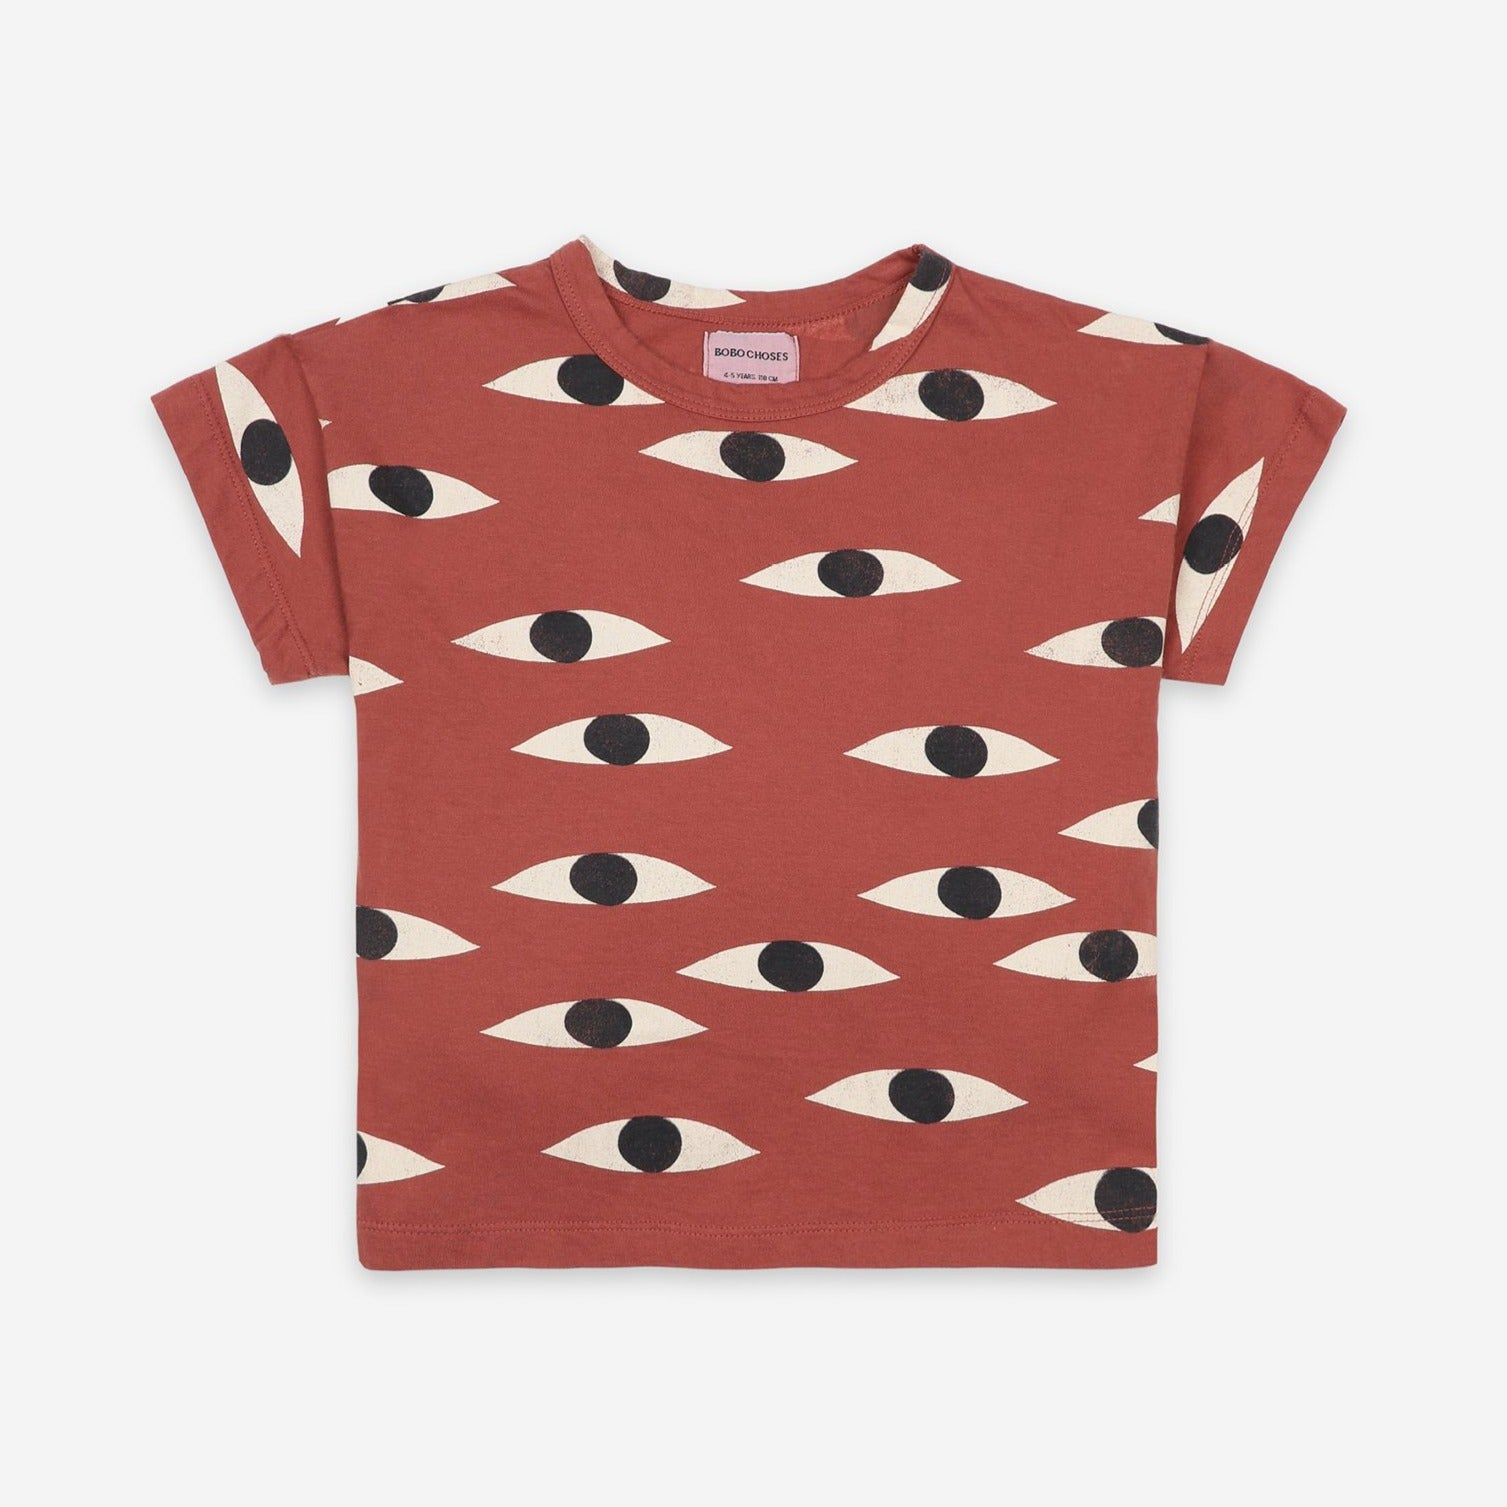 Bobo Choses eyes aop tee, coconut shell